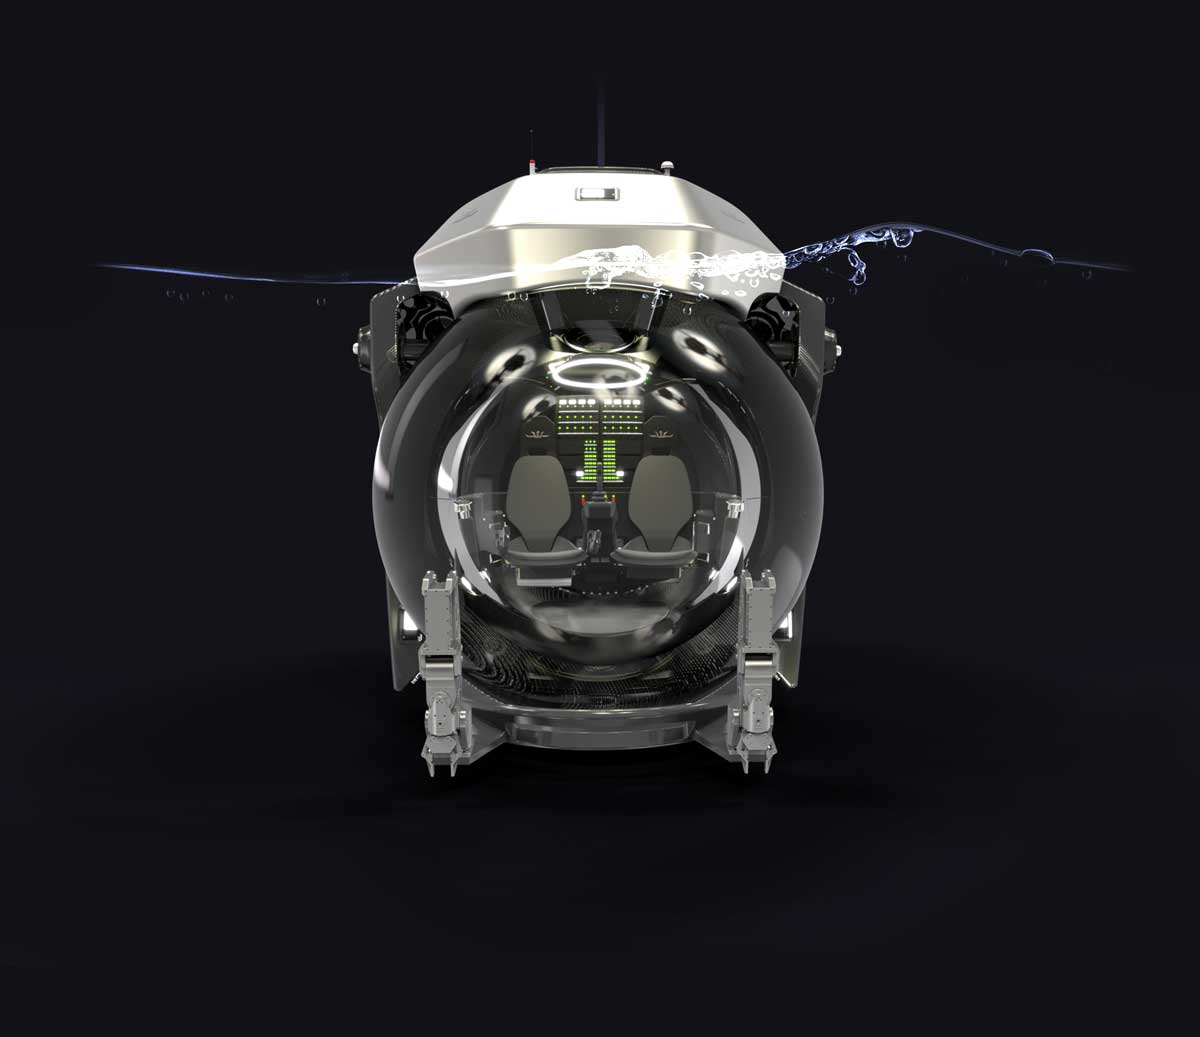 Submersible enters water with wings folded for streamlined, hydrodynamic vertical movement.